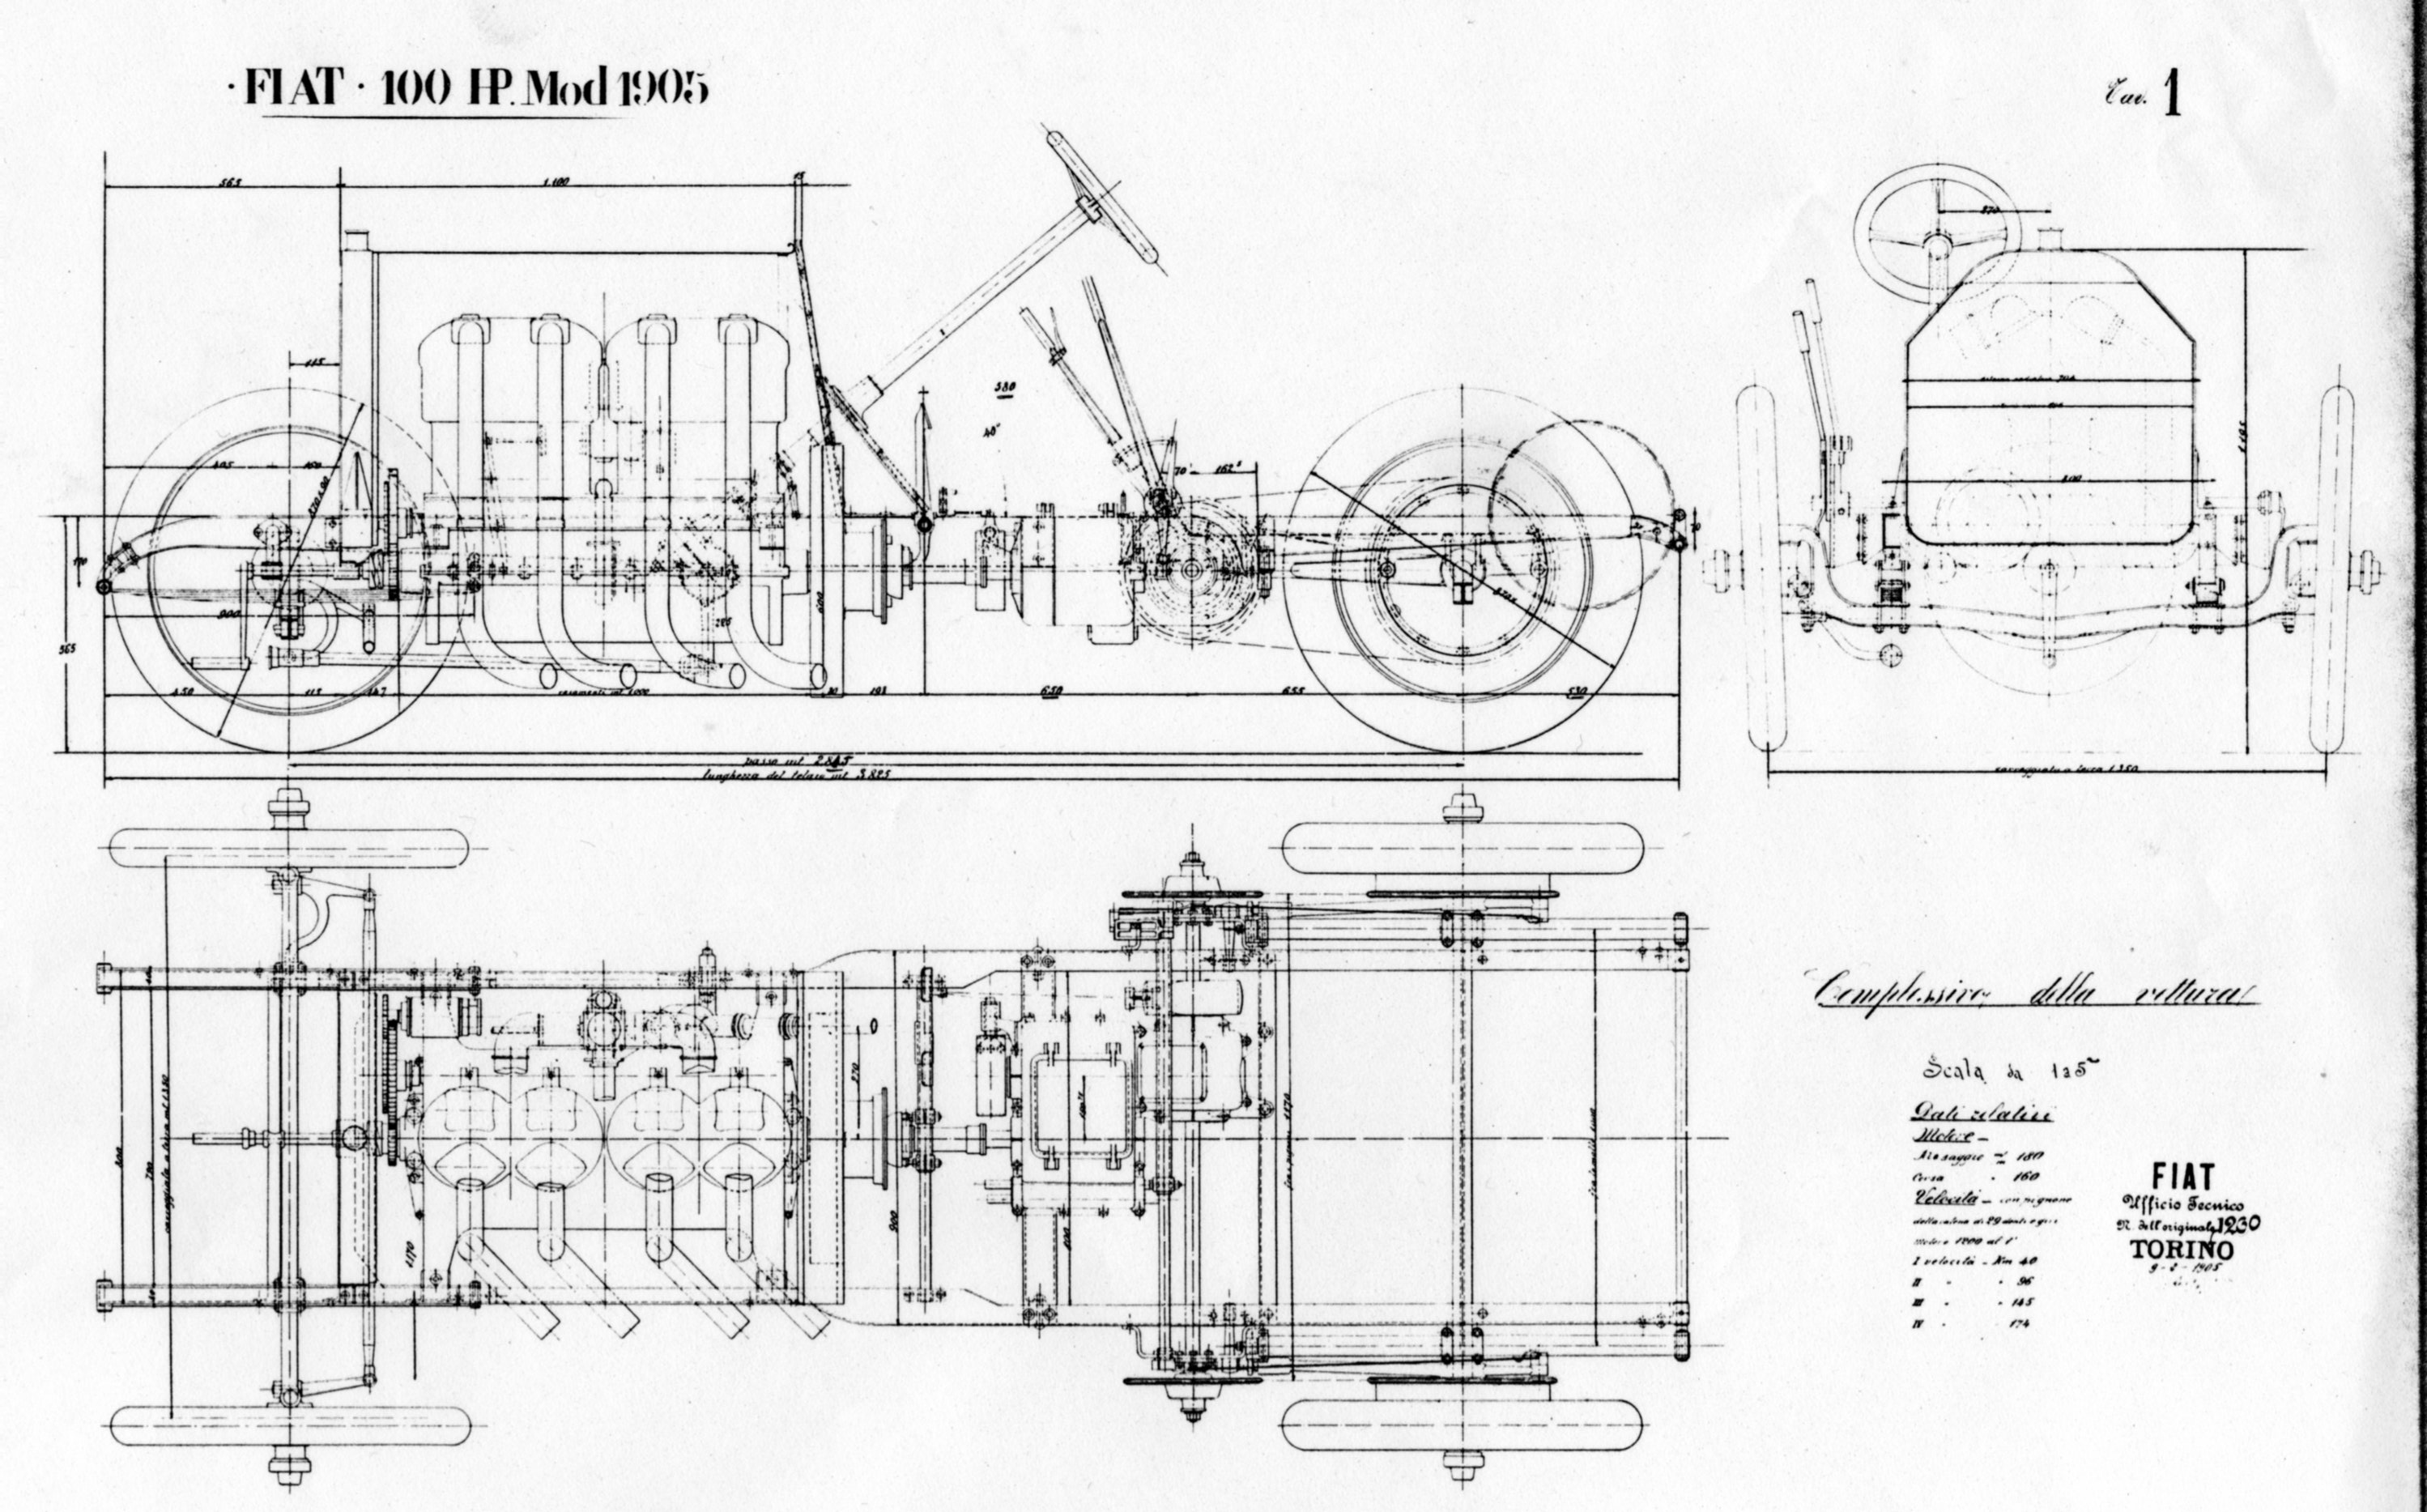 Fiat 100 Hp Drawing Information